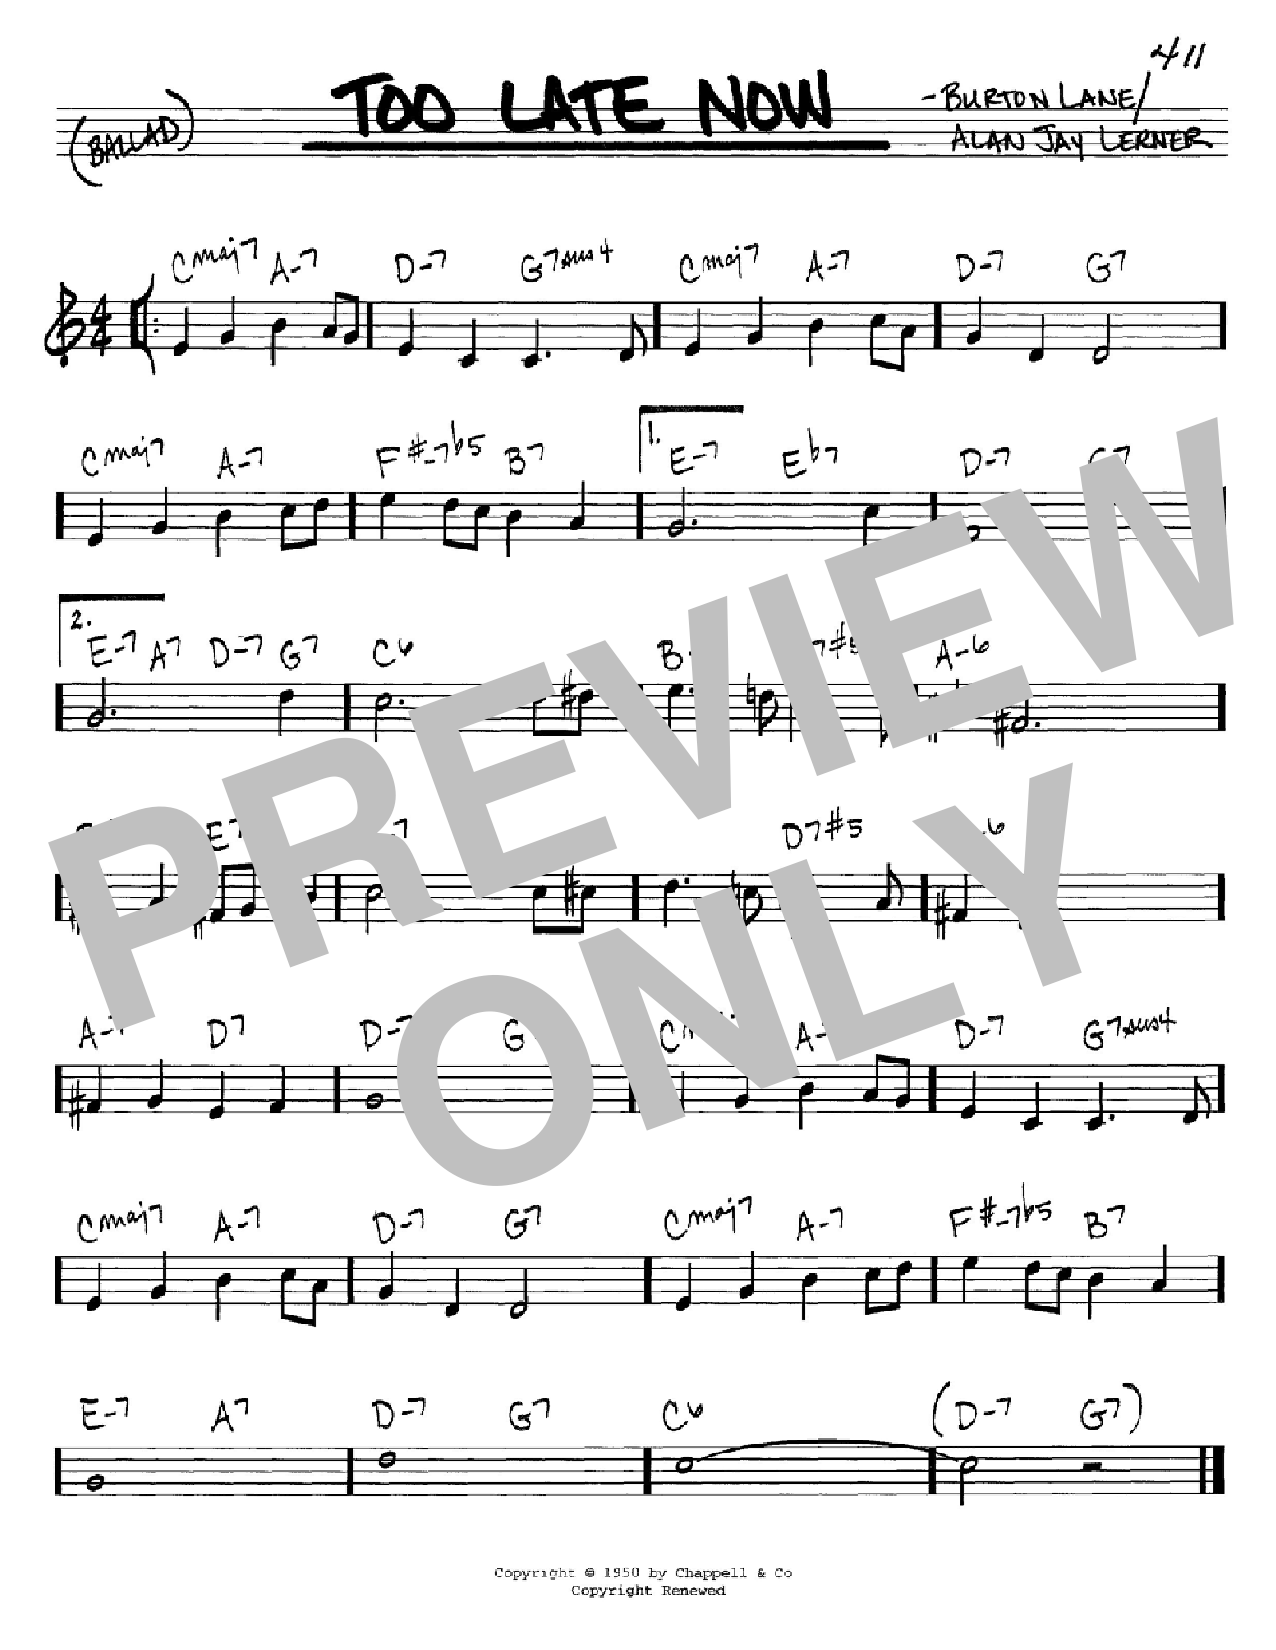 Too Late Now Sheet Music